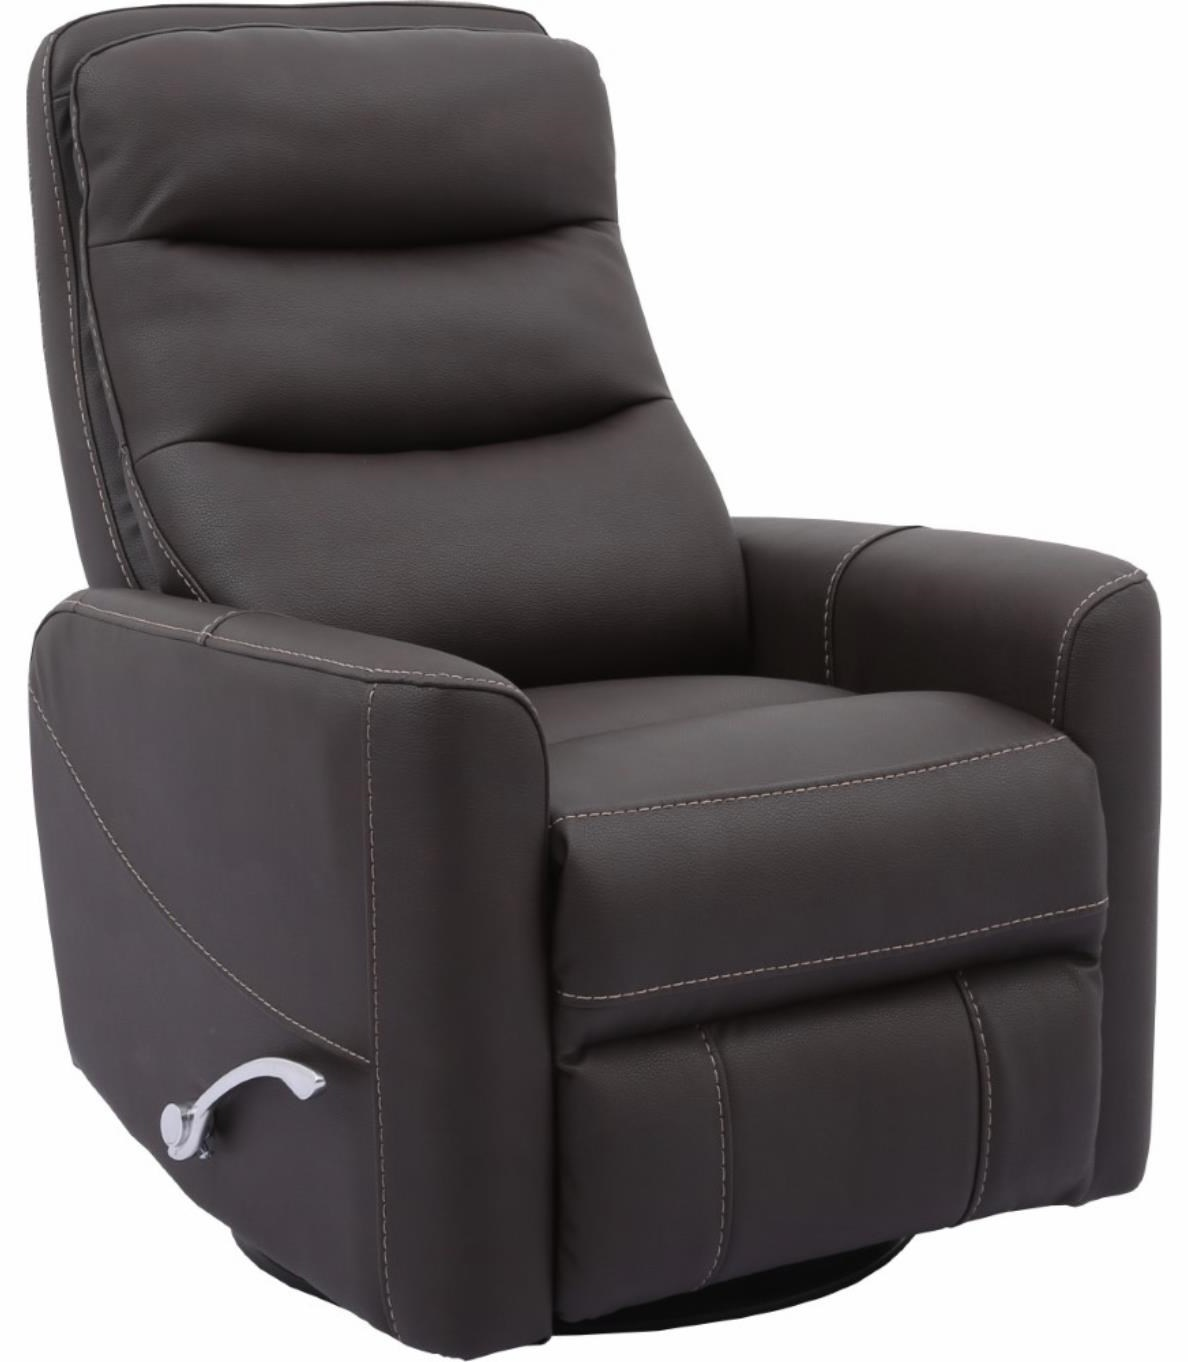 Hercules Swivel Glider Recliner by Parker House at Beck's Furniture